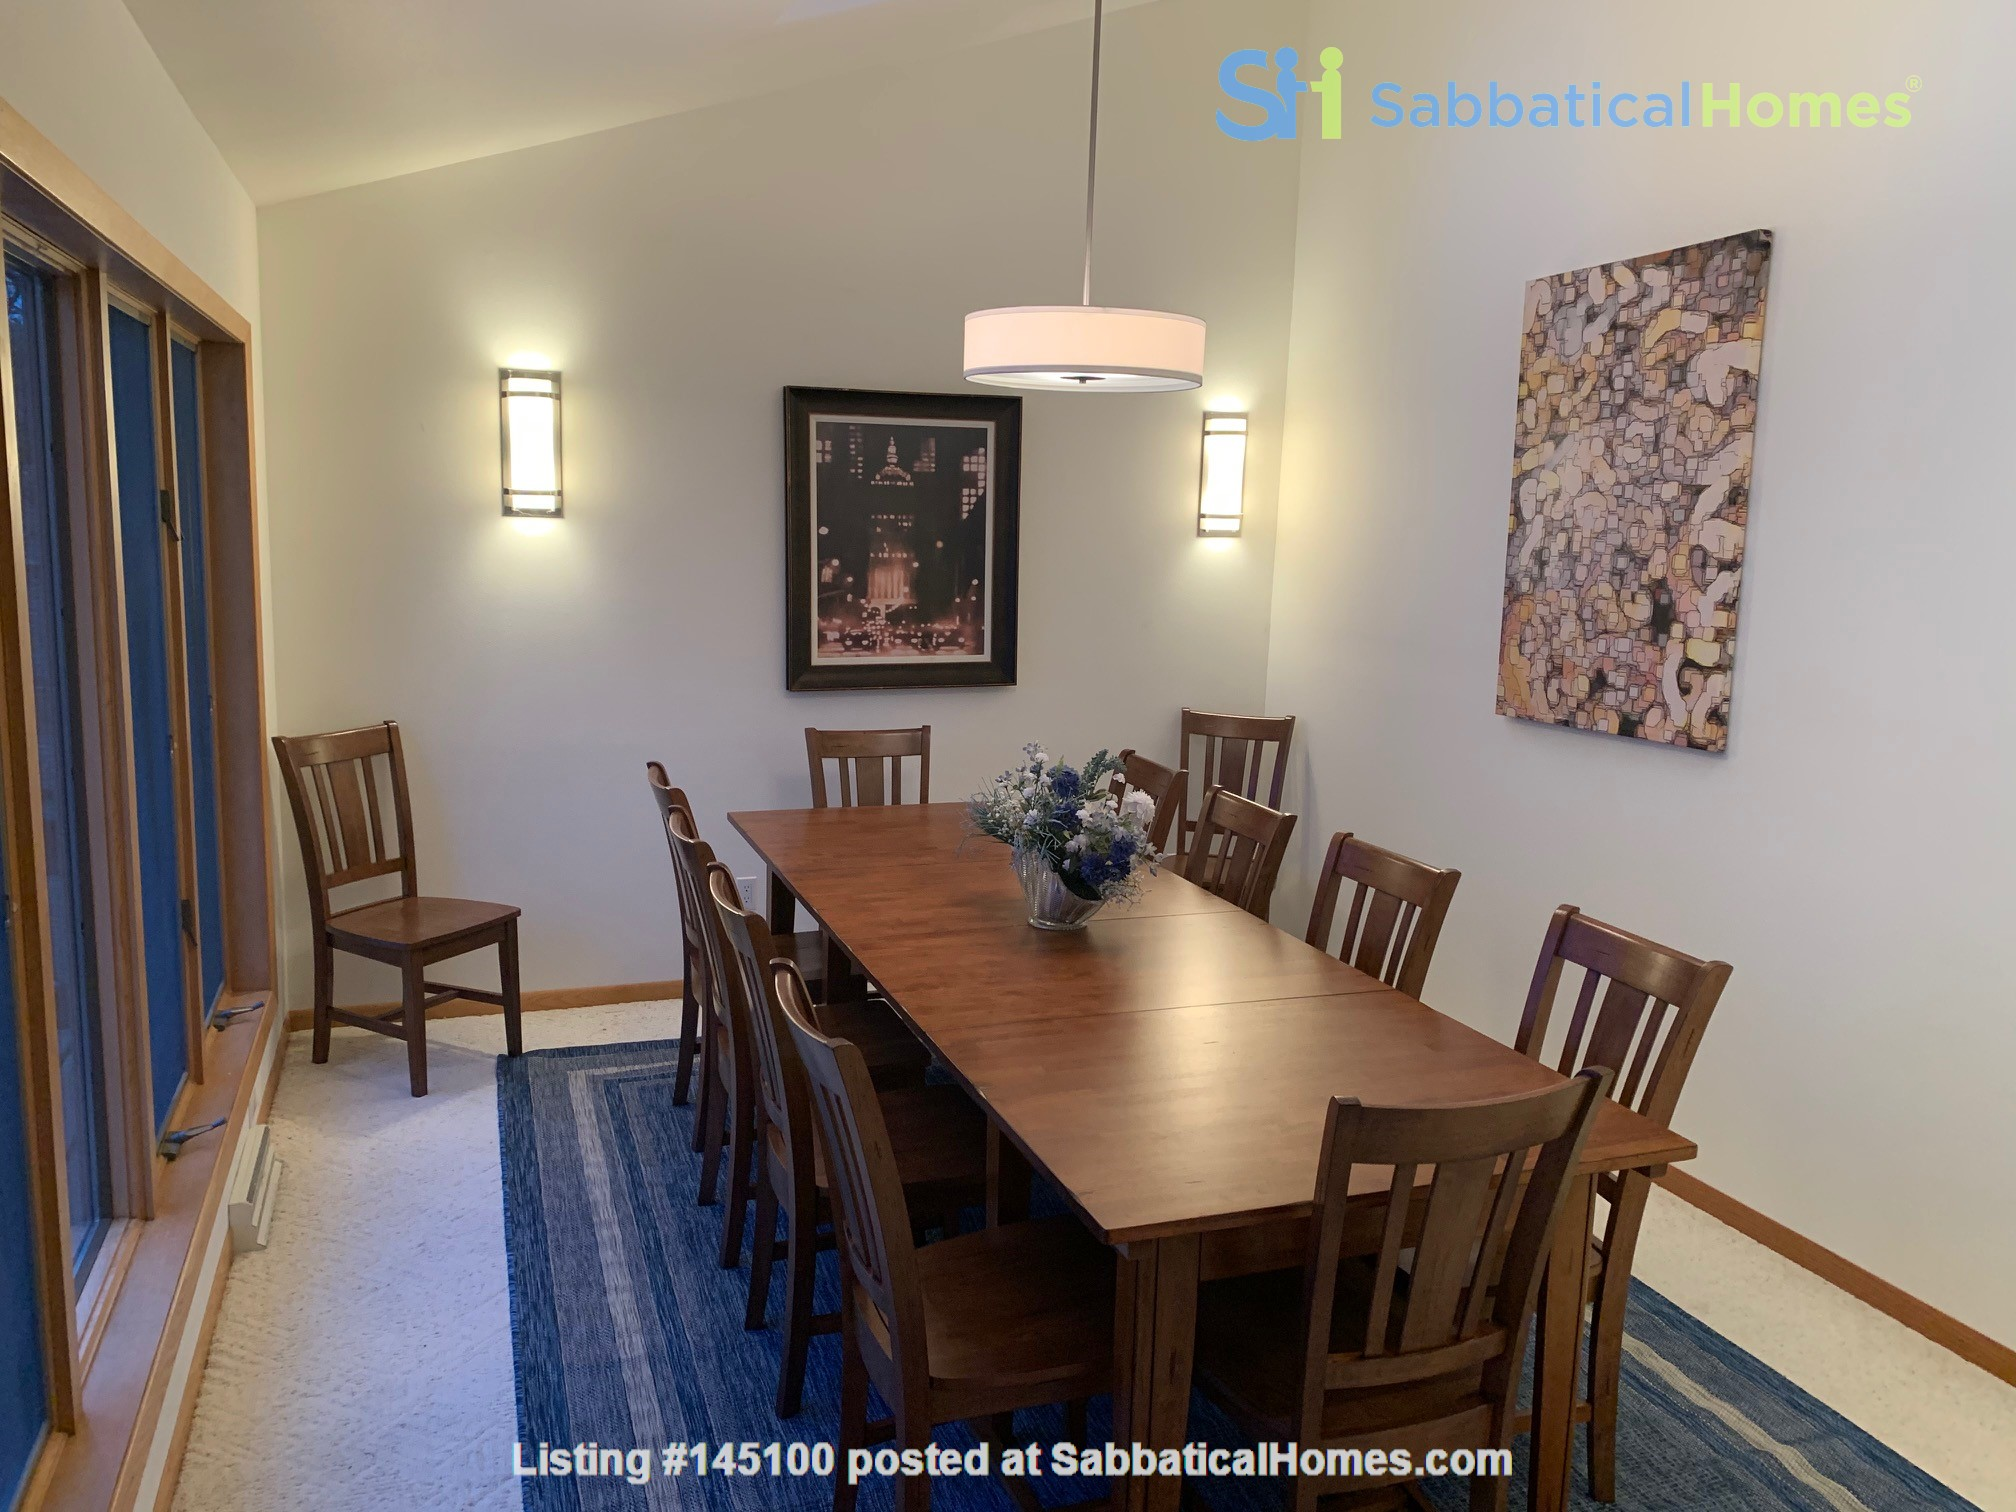 Fully Furnished Peaceful Private Lakefront home 10 mins to UW - Amazing! Home Rental in McFarland, Wisconsin, United States 2